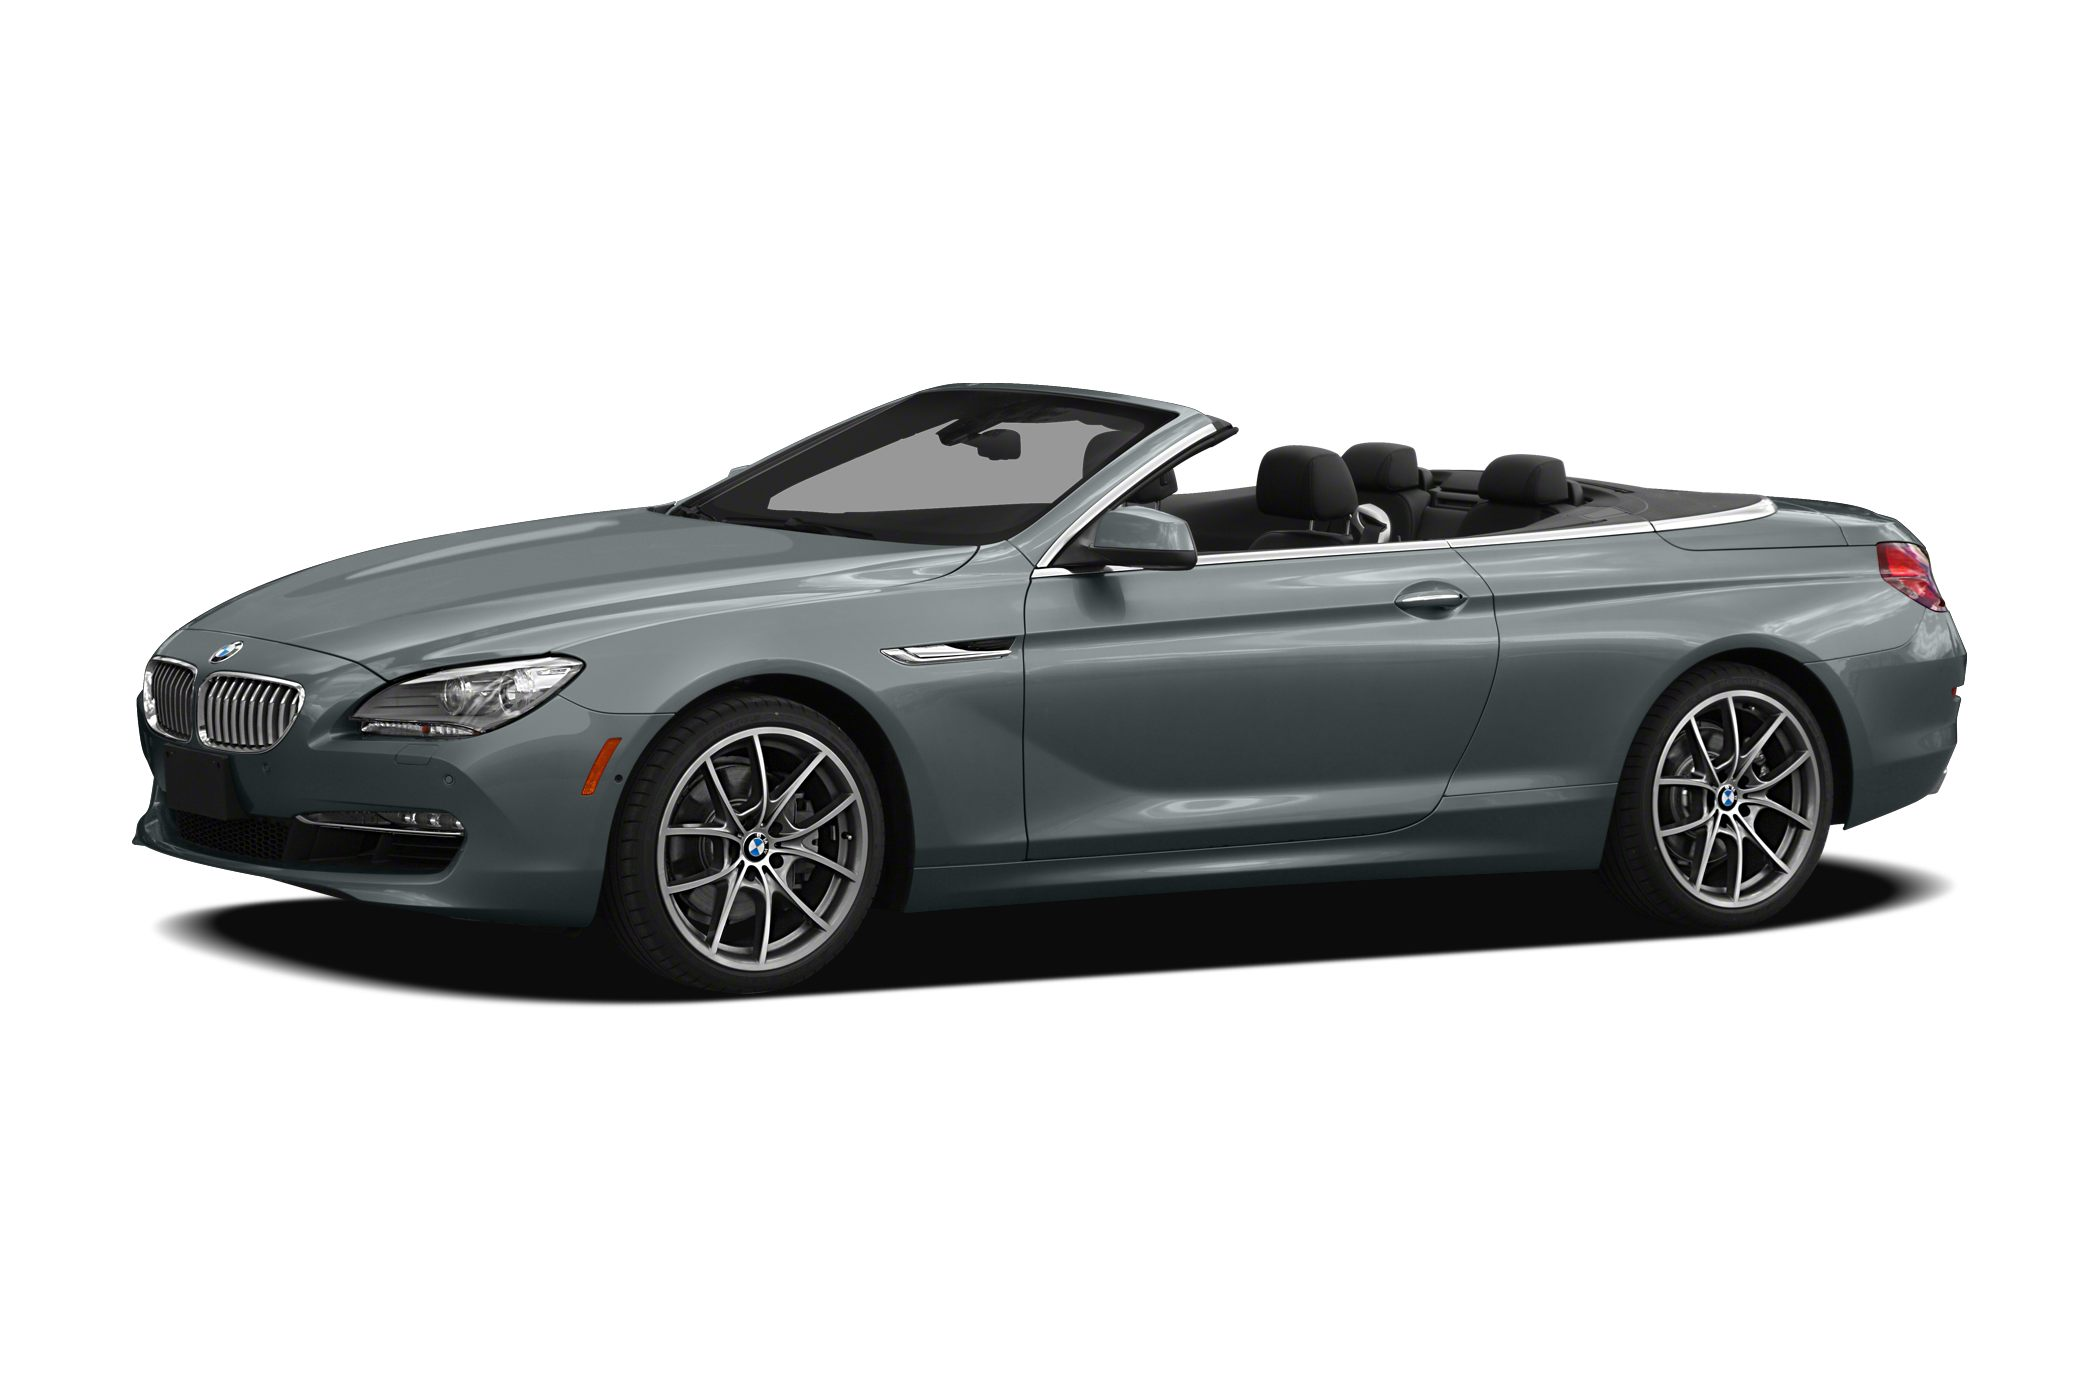 2012 BMW 650 I Convertible for sale in New York for $60,995 with 25,893 miles